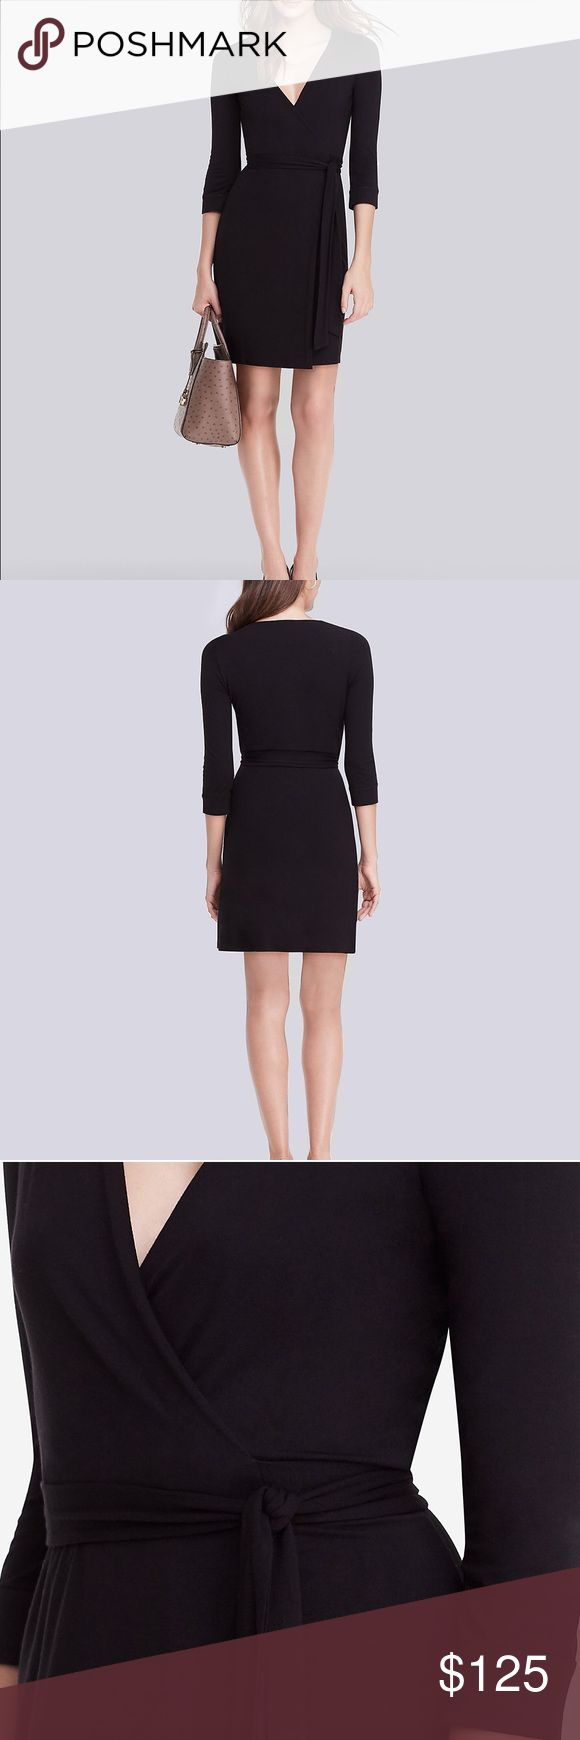 """⚡SALE! $368 New Julian Mini Jersey Wrap Dress 6 New Julian Two Mini Jersey Wrap Dress  $368.00 Gently pre-owned. No flaws. Our classic wrap dress in a playful, mini length. The New Julian Two Mini is perfect for a night on the town or a weekend getaway. Cross over wrap with a self-tie belt. 3/4 sleeves. Unlined. Falls to mid thigh. Fit runs small.  Our signature medium to lightweight dress jersey with stretch.  93% Rayon 7% Spandex  49cm / 19"""" from natural waist Diane von Furstenberg Dresses…"""